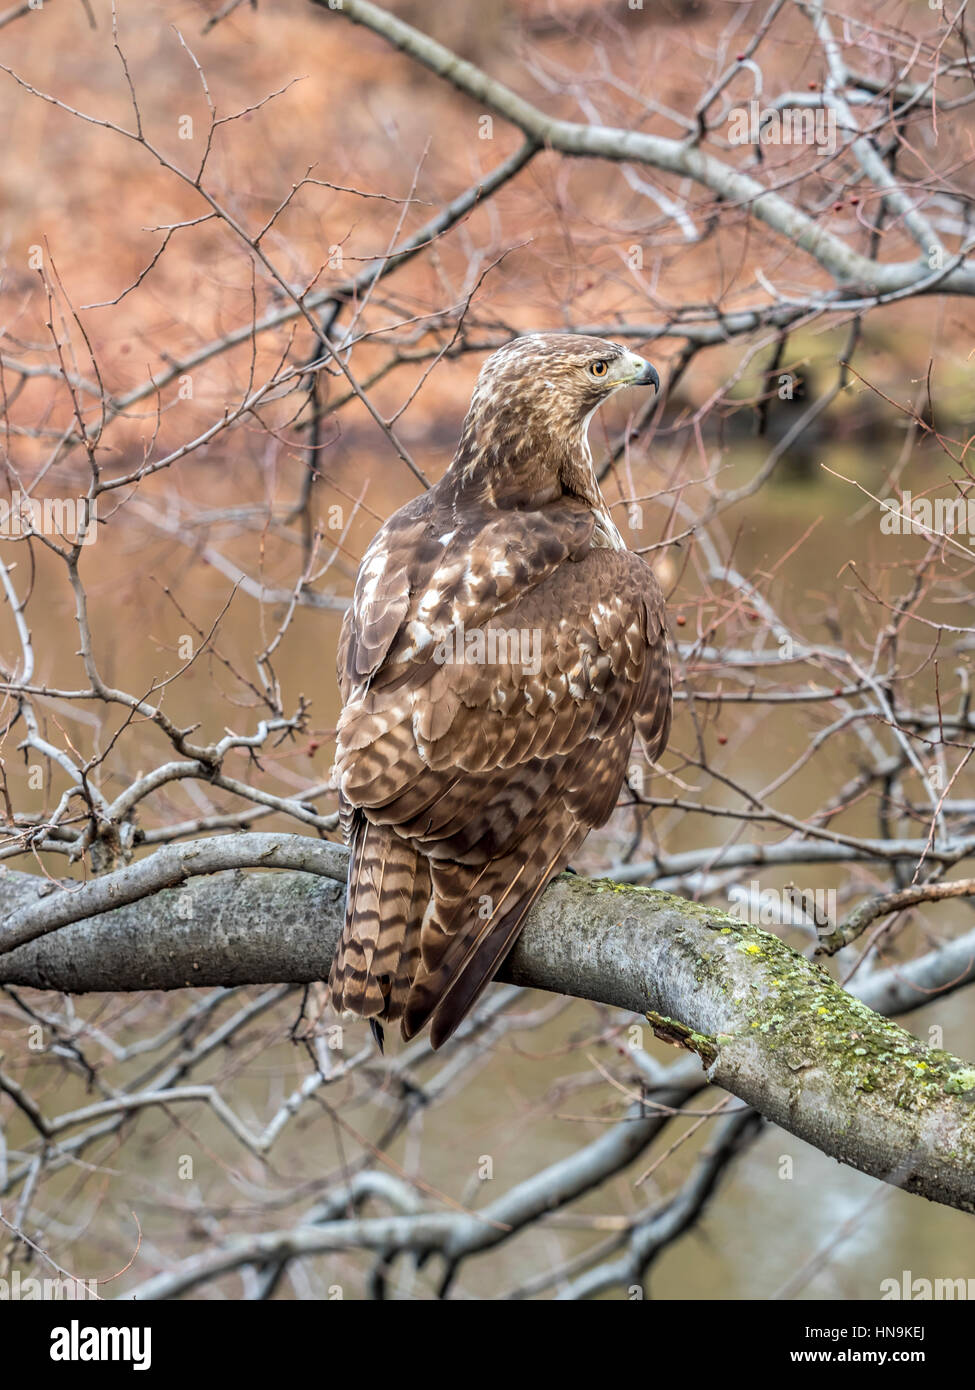 Red Tailed Hawk Buteo Jamaicensis Is A Bird Of Prey In Central Park Stock Photo Alamy